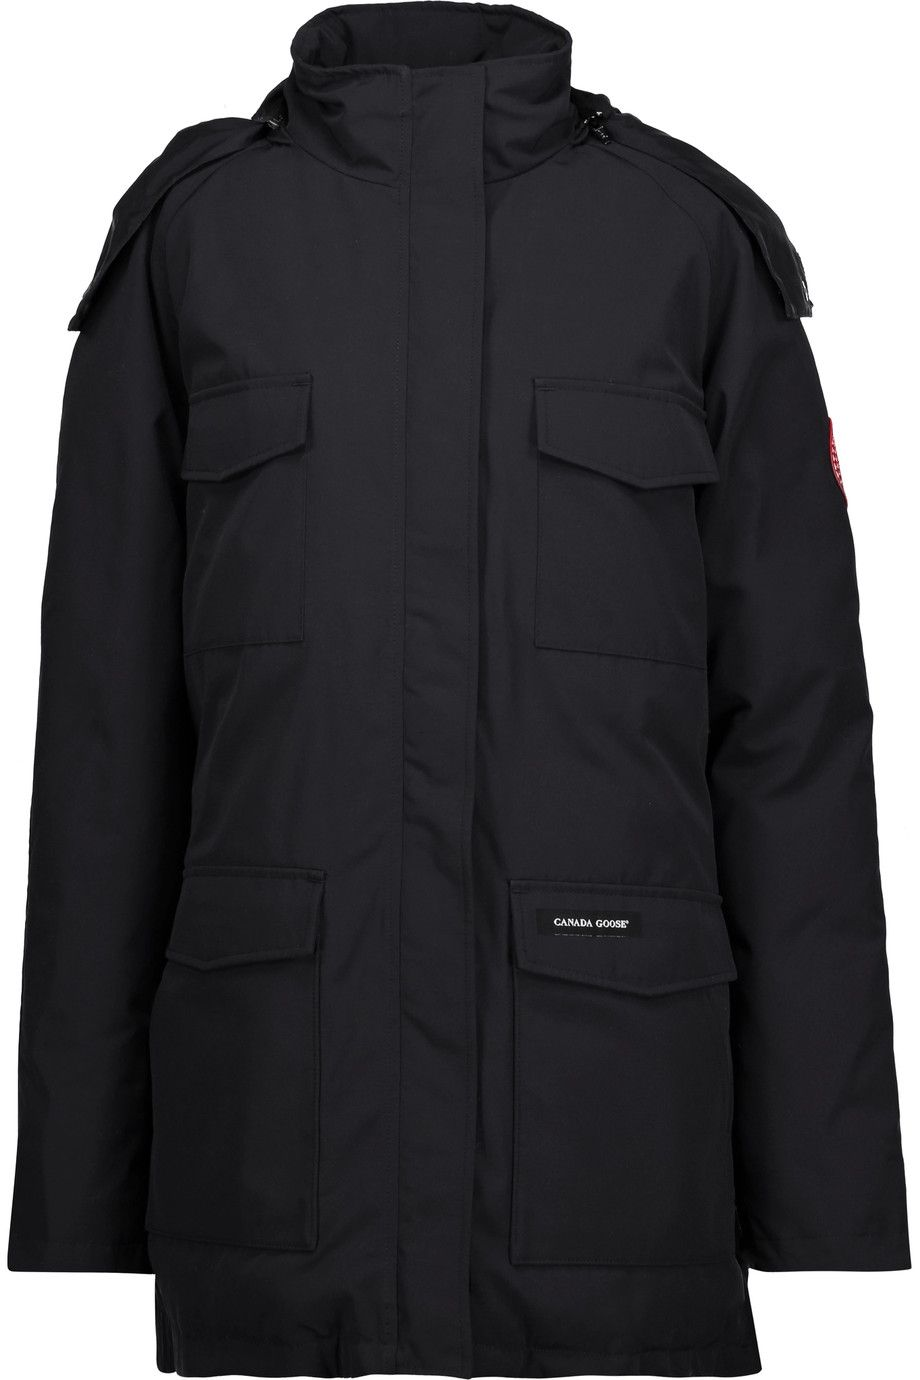 CANADA GOOSE Constable shell down hooded parka. #canadagoose #cloth #parka